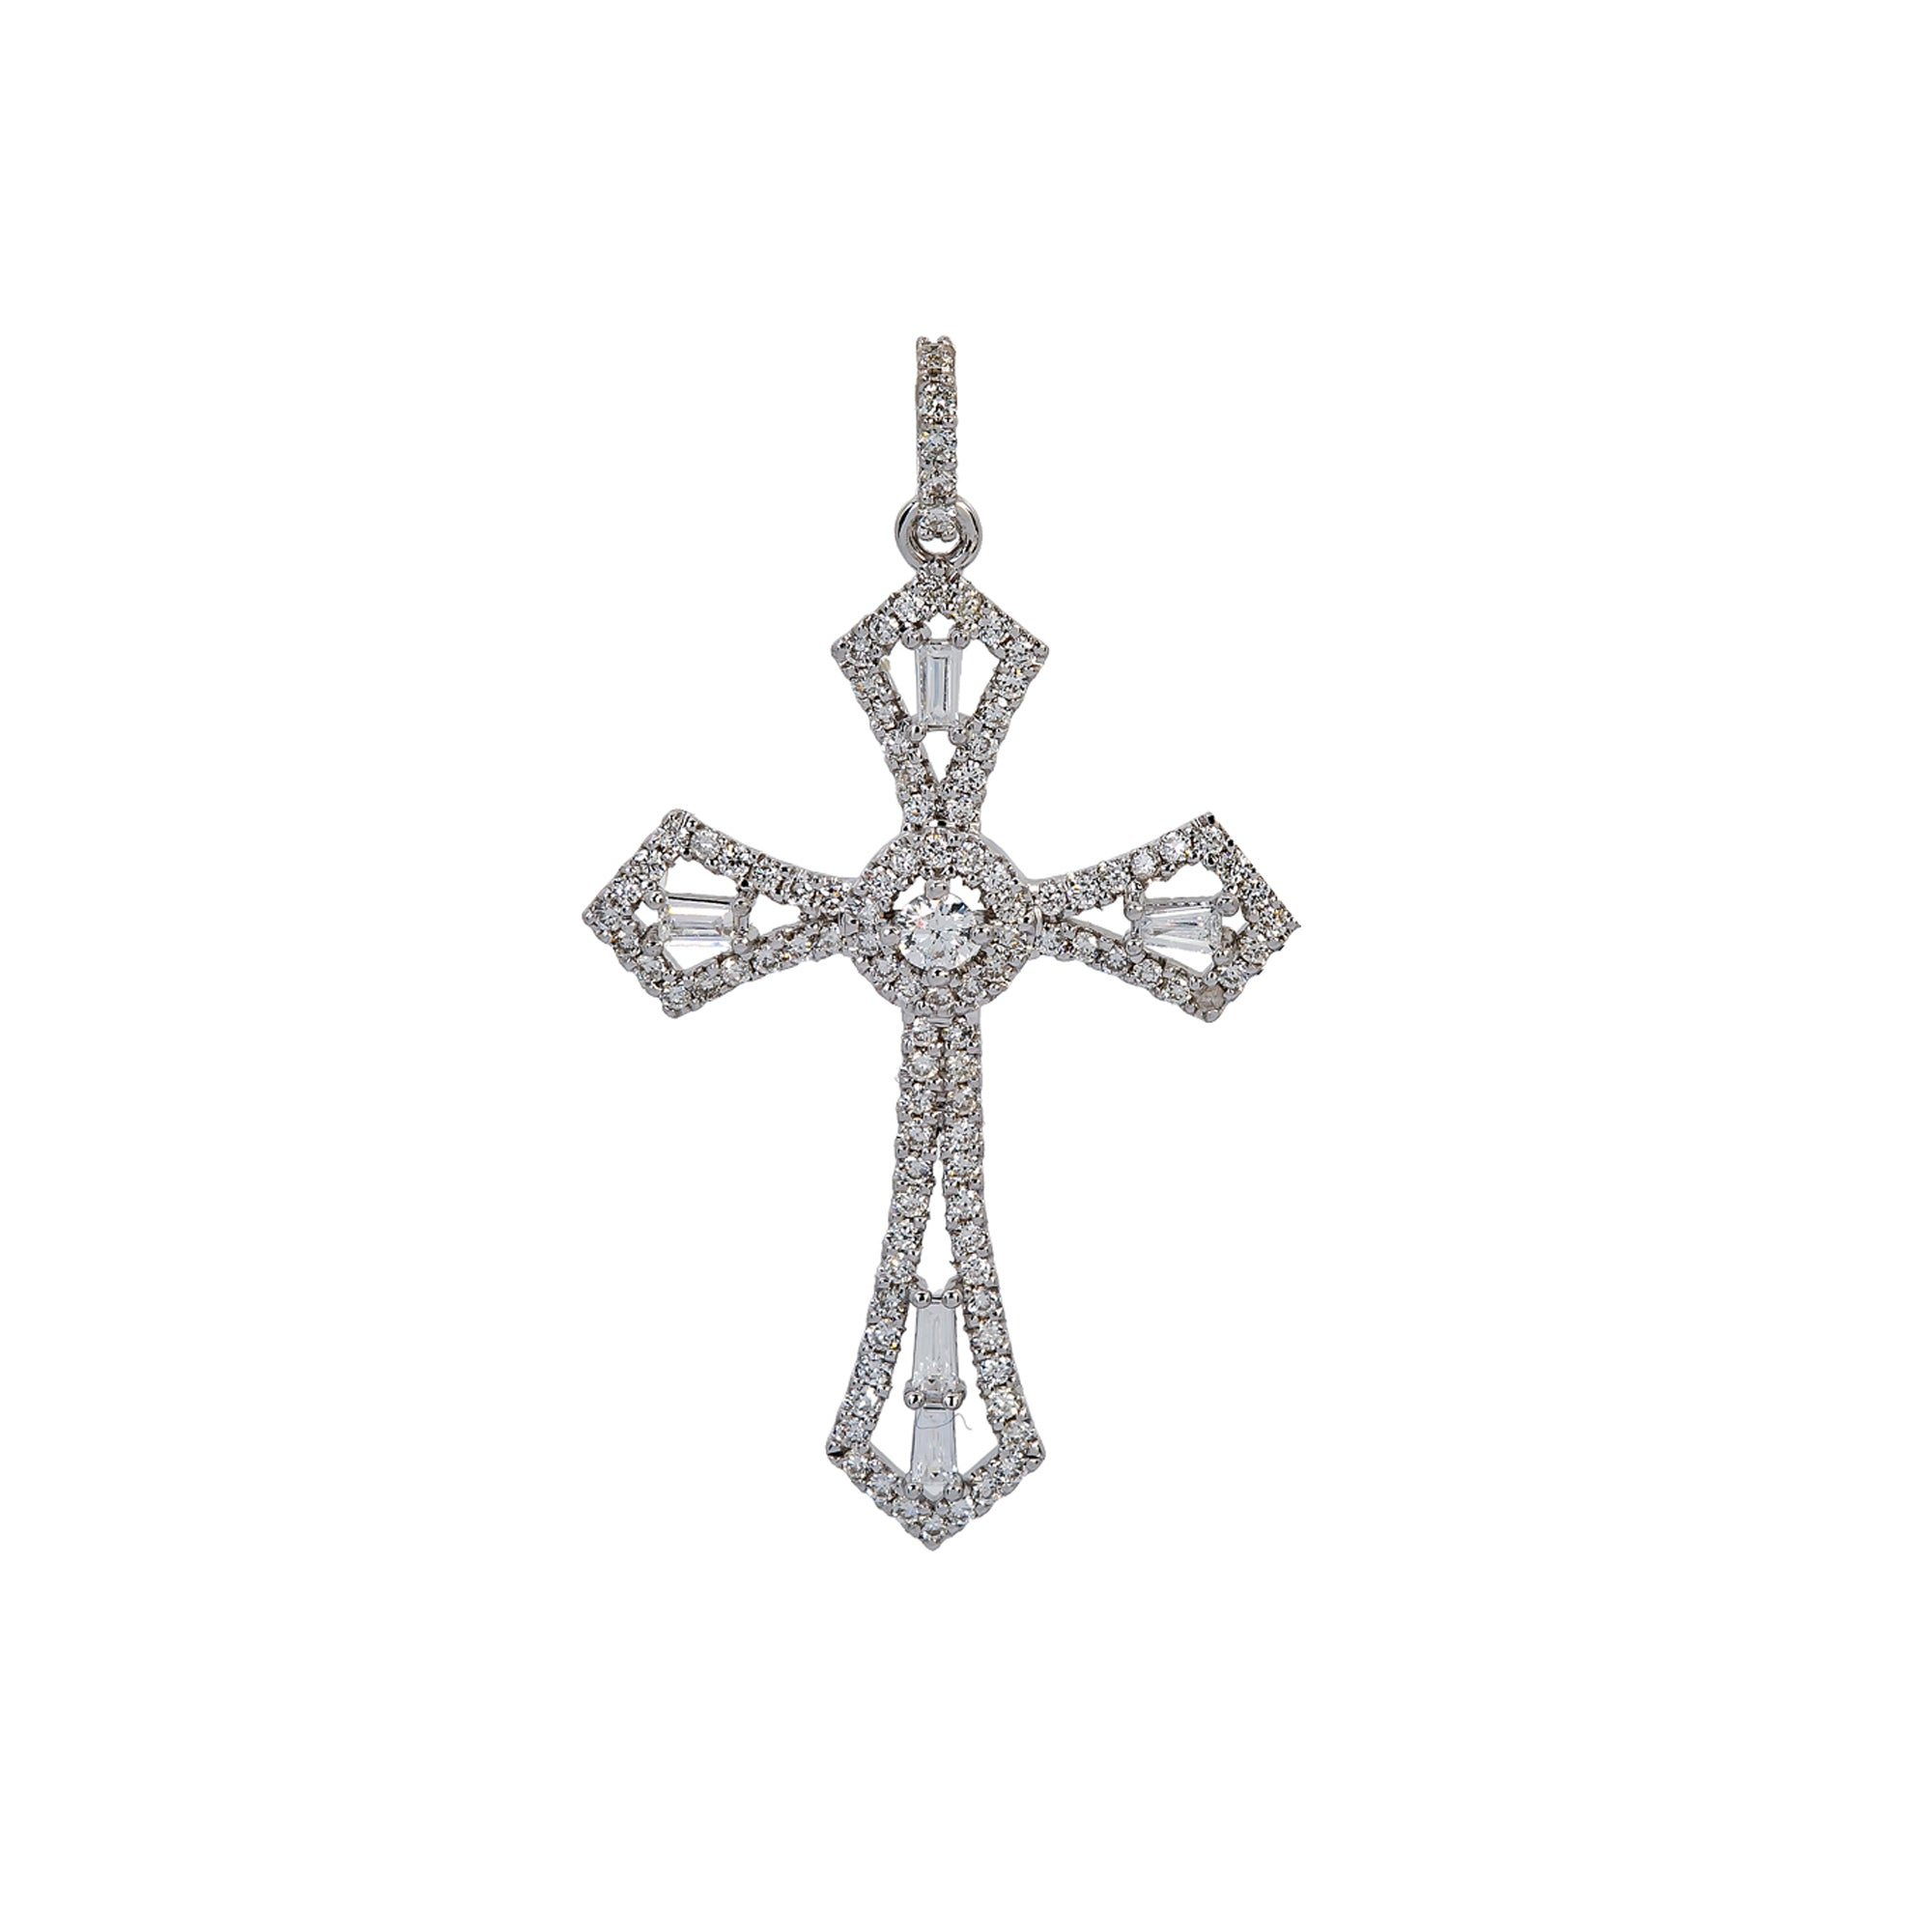 14K White Gold Cross Pendant with 0.62 CT Baguette and Round Diamonds